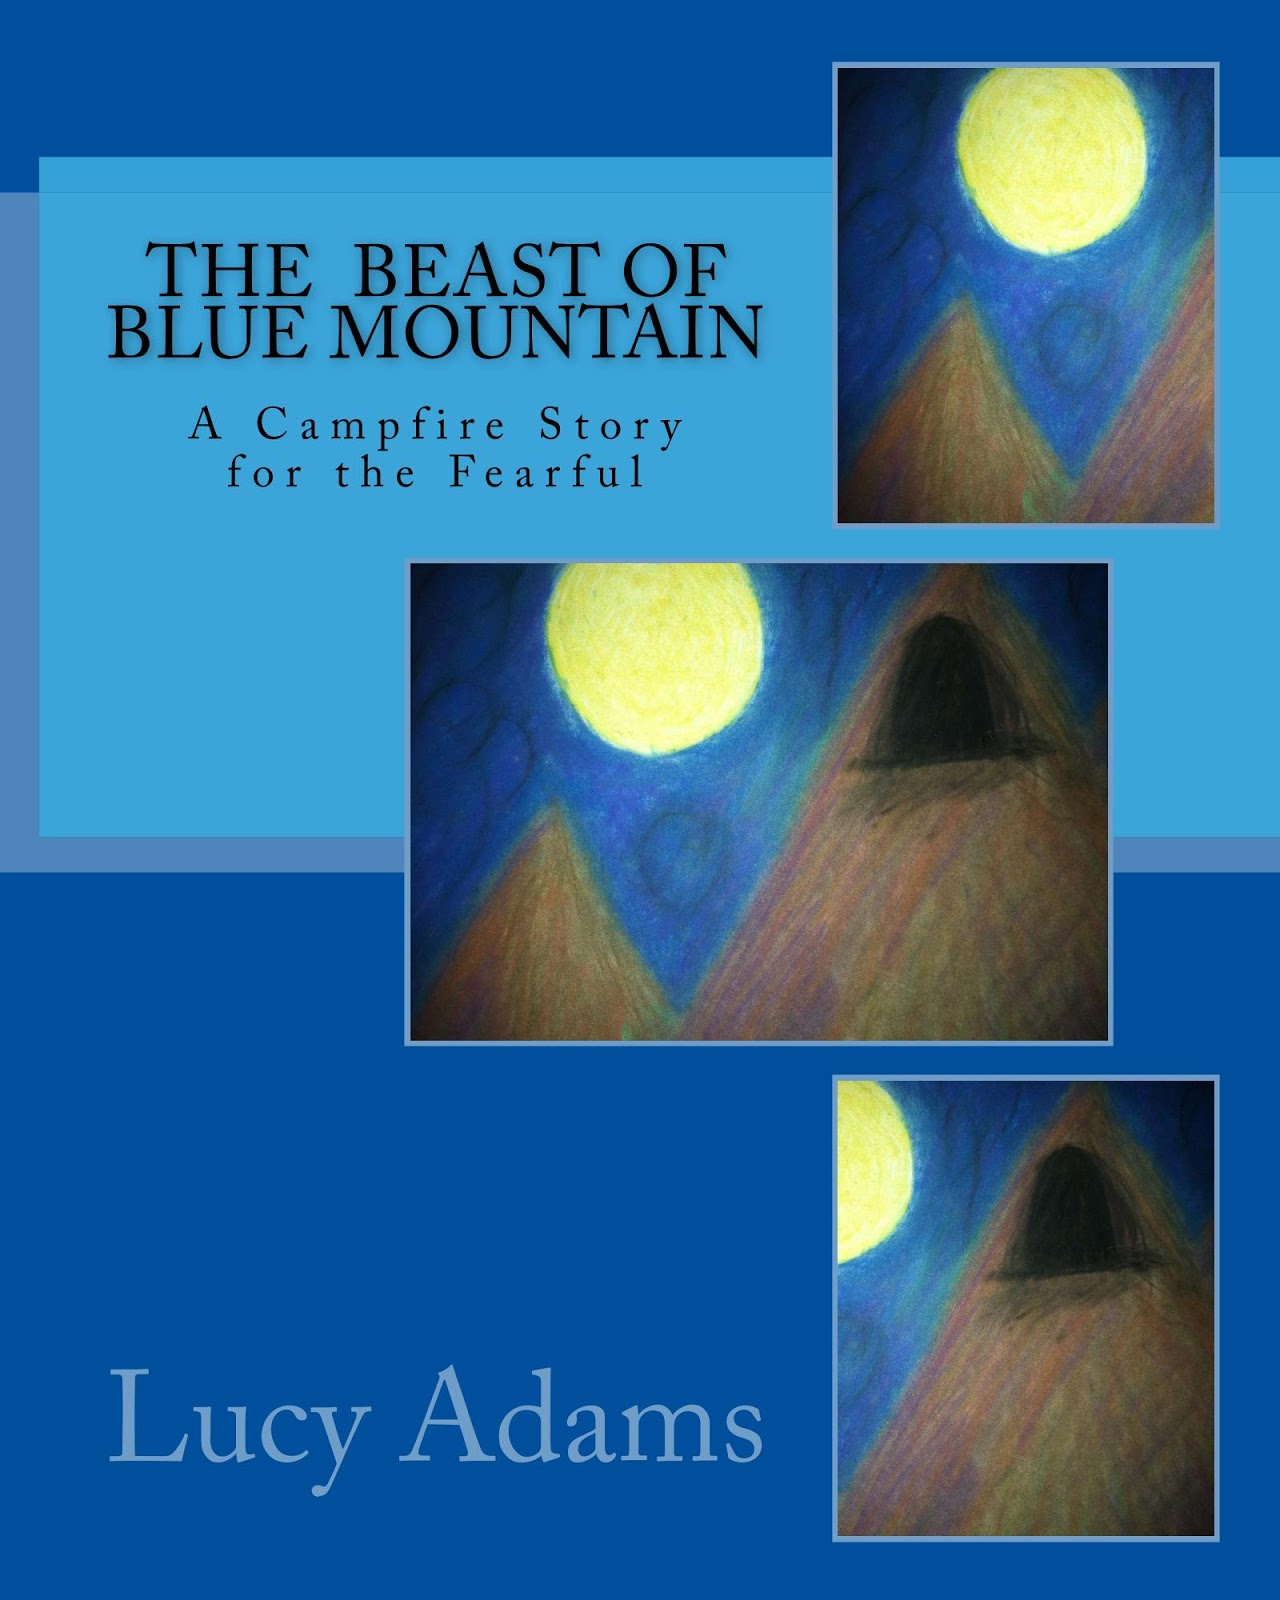 http://www.amazon.com/Beast-Blue-Mountain-Campfire-Fearful/dp/1492259101/ref=sr_1_1_title_0_main?s=books&ie=UTF8&qid=1409948132&sr=1-1&keywords=the+beast+of+blue+mountain